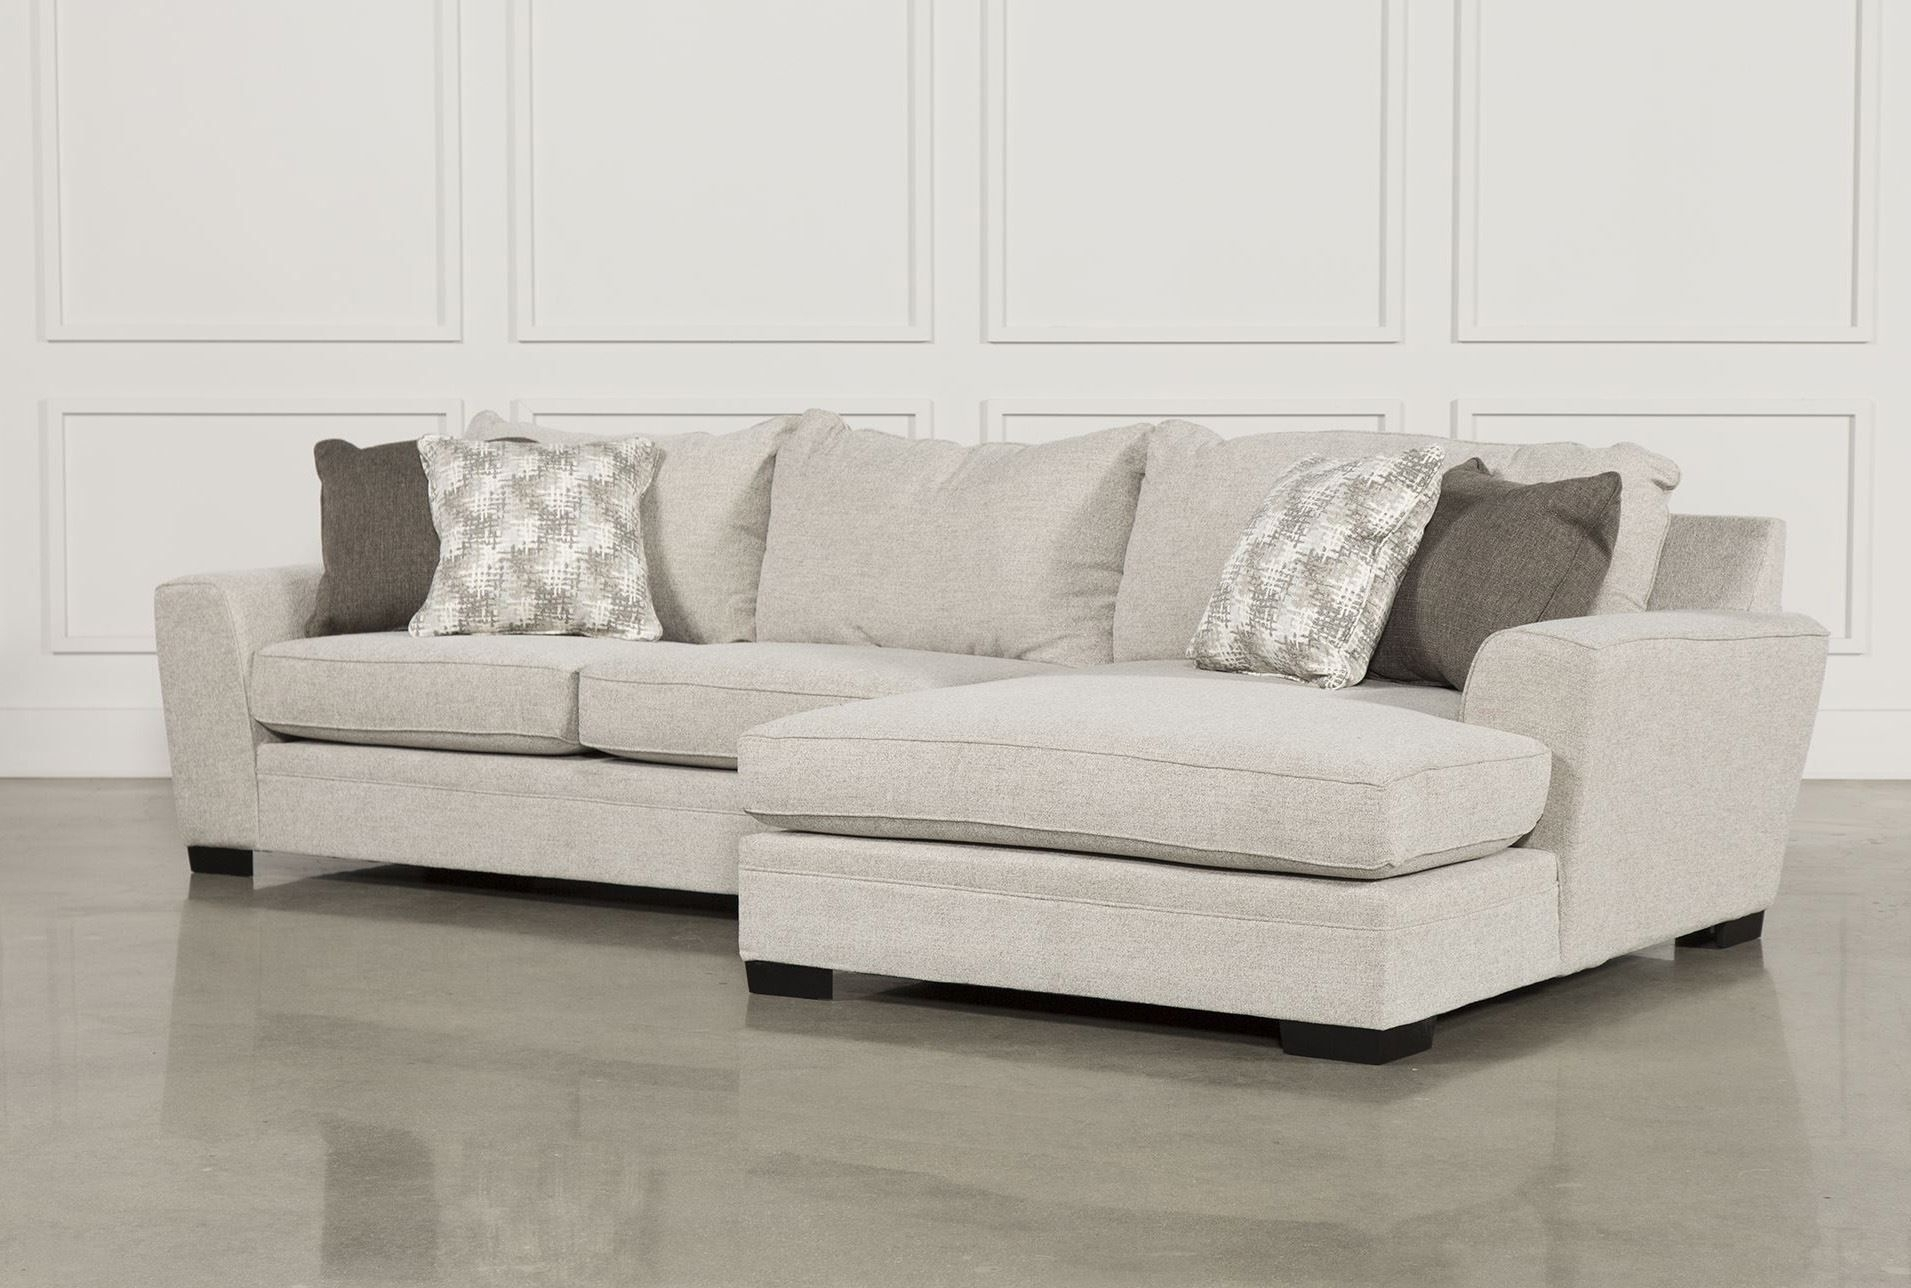 Delano 2 Piece Sectional W/raf Oversized Chaise | Pinterest | Living Within Aurora 2 Piece Sectionals (Image 13 of 25)